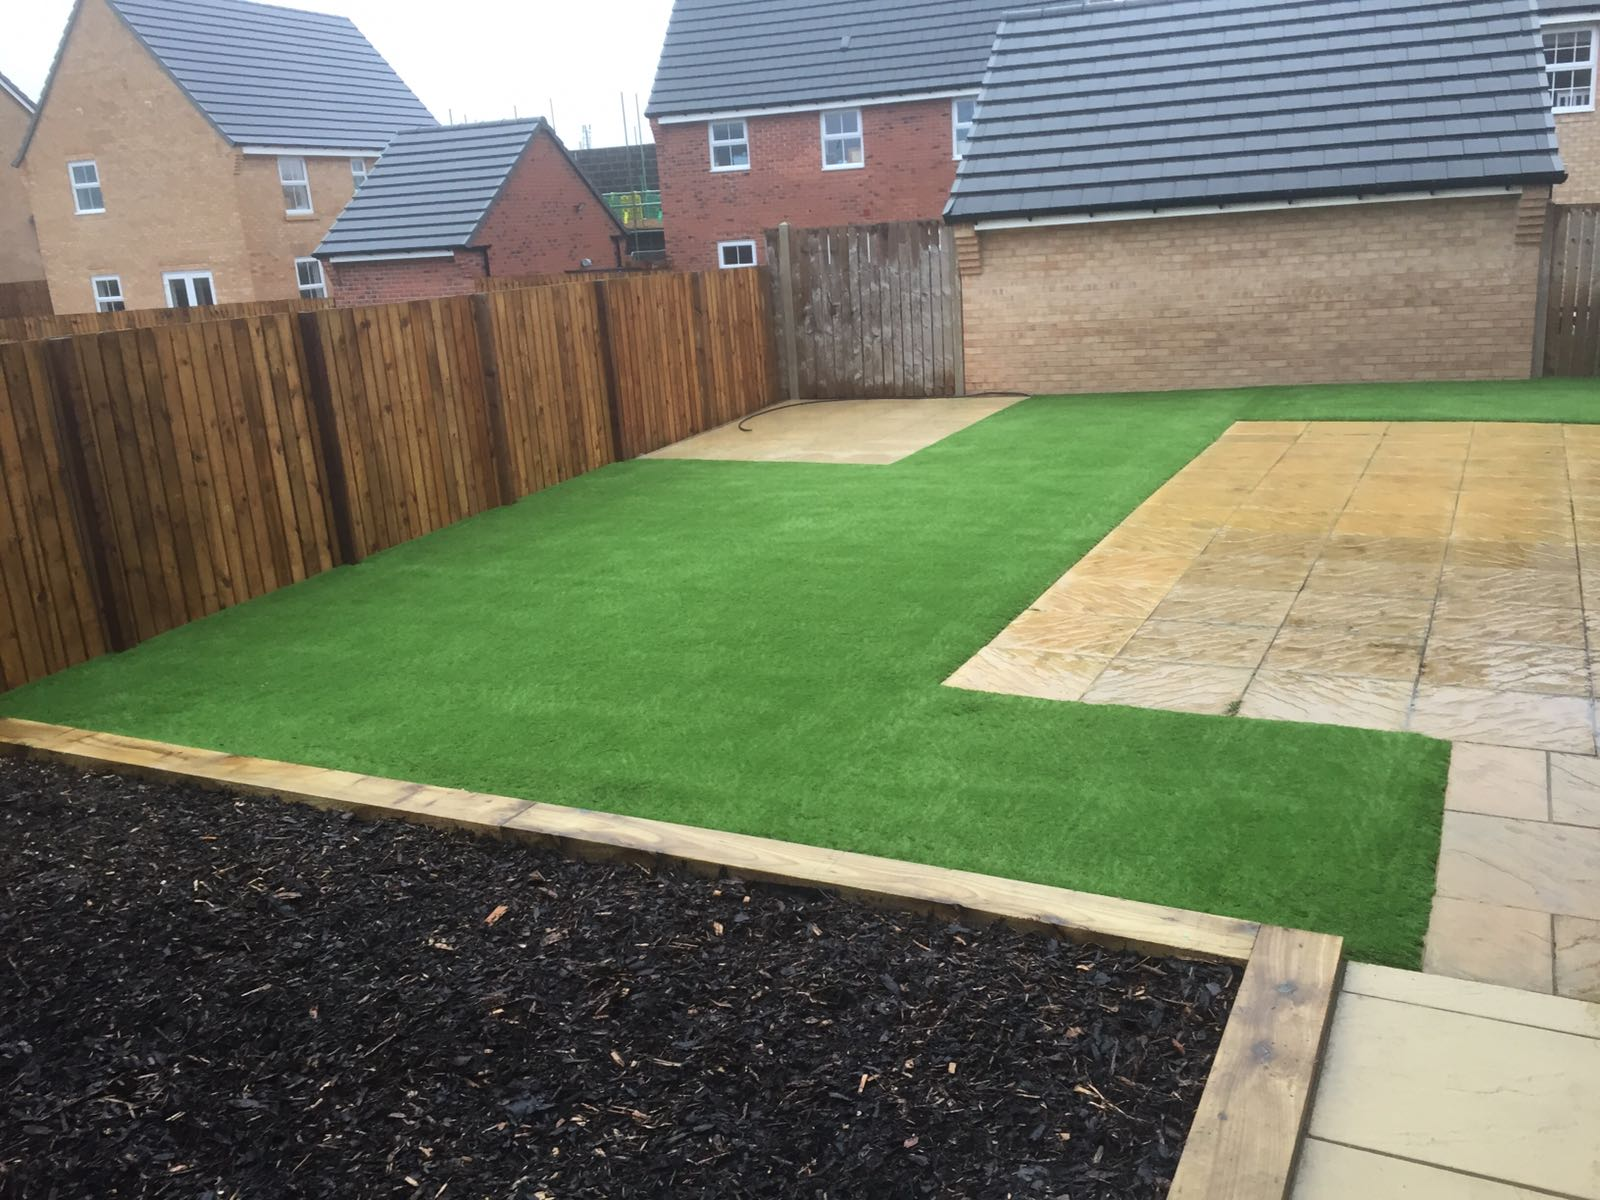 Splendid Back Garden  Bishopthorpe York  Polished Artificial Grass With Excellent Back Garden York  Before With Attractive Bamboo Garden Screening Also Garden Toy In Addition Princess Garden London And Hodnet Hall Gardens Opening Times As Well As Seafield Gardens Fort William Additionally Chiltern Garden Centre From Polishedartificialgrasscouk With   Excellent Back Garden  Bishopthorpe York  Polished Artificial Grass With Attractive Back Garden York  Before And Splendid Bamboo Garden Screening Also Garden Toy In Addition Princess Garden London From Polishedartificialgrasscouk